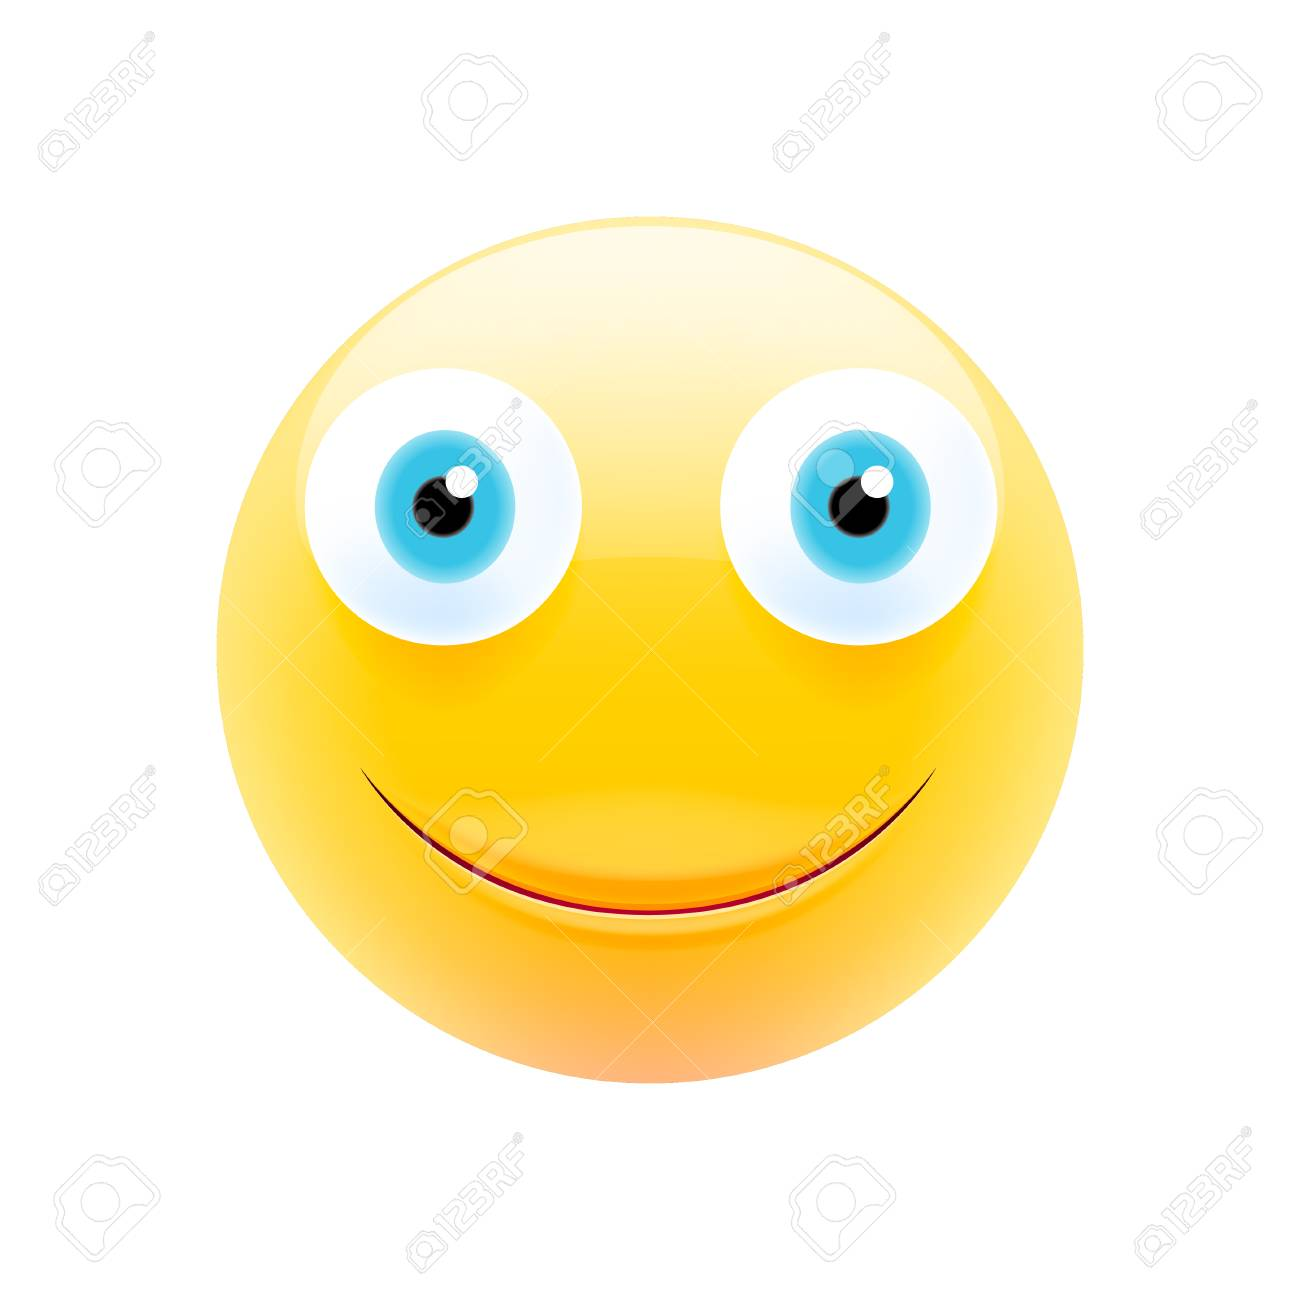 Smiling Face Emoji Happy Emoticon Laughing Tears Smile Icon Isolated Vector